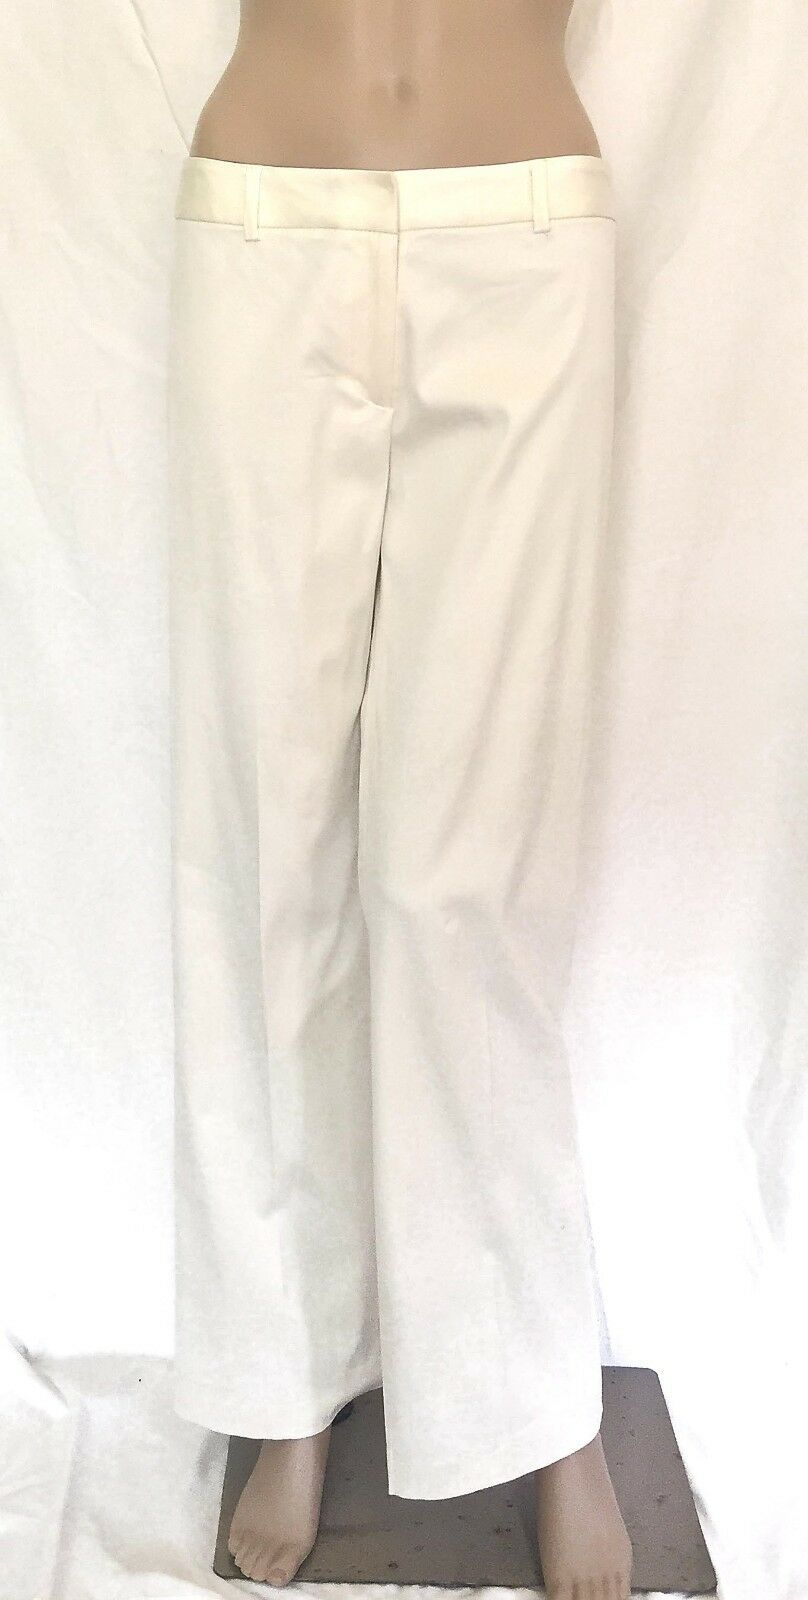 Milly of New York White Cotton Blend Pants - Size 6 - EUC